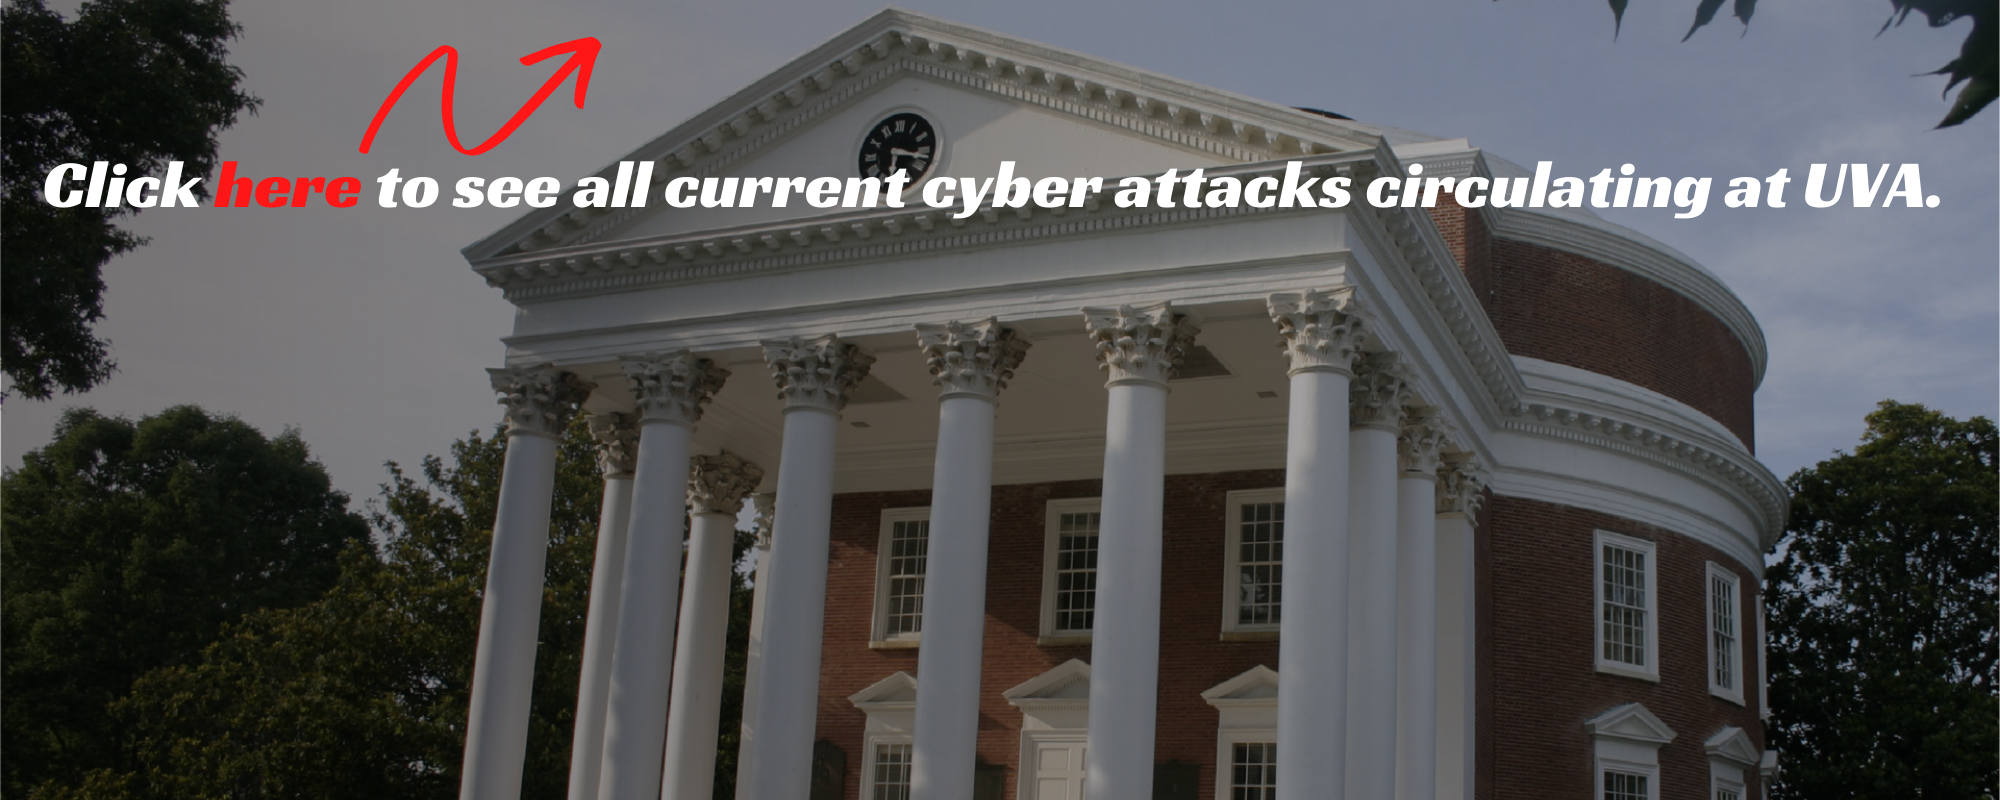 "Image of rotunda with text, ""Click here to see all current cyber attacks circulating at UVA."""